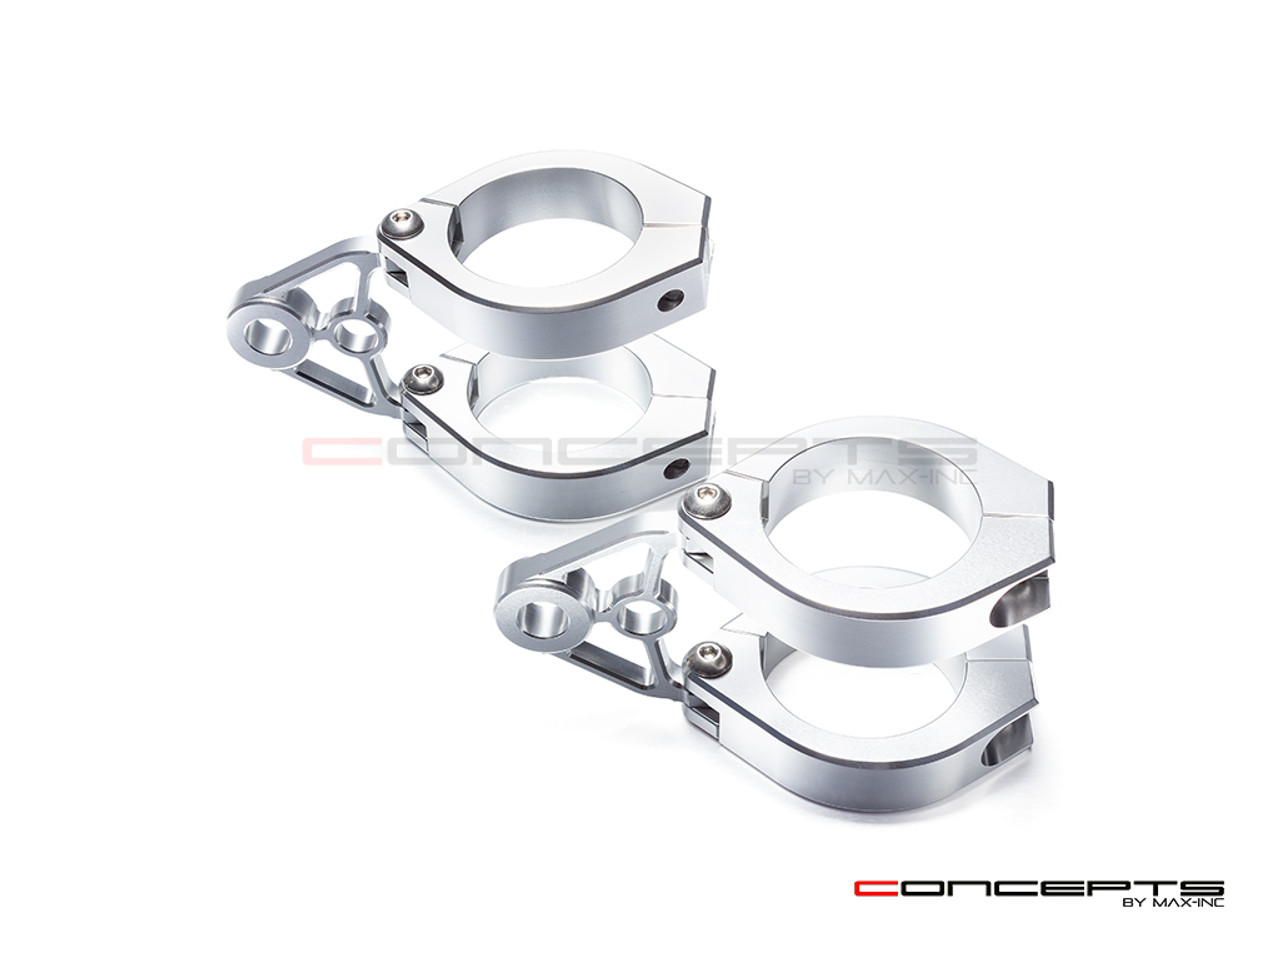 MAX Corto Polished CNC Machined Headlight Brackets - Fits Fork Sizes 32 - 59mm